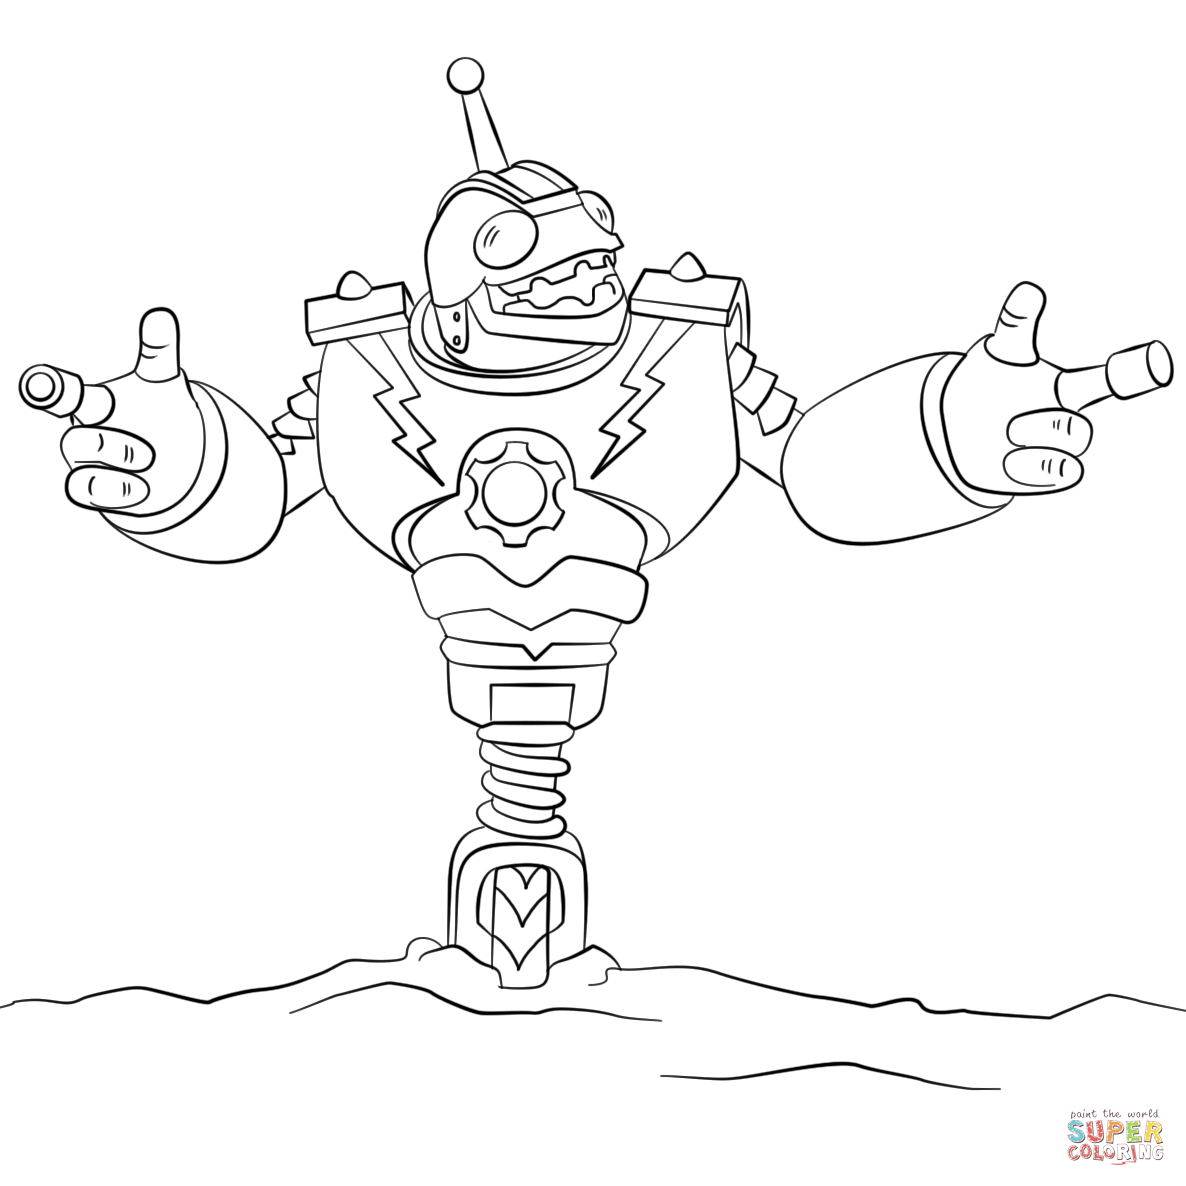 Skylanders Giants Tree Rex Coloring Pages – Kaigobank tout Dessin De Skylanders